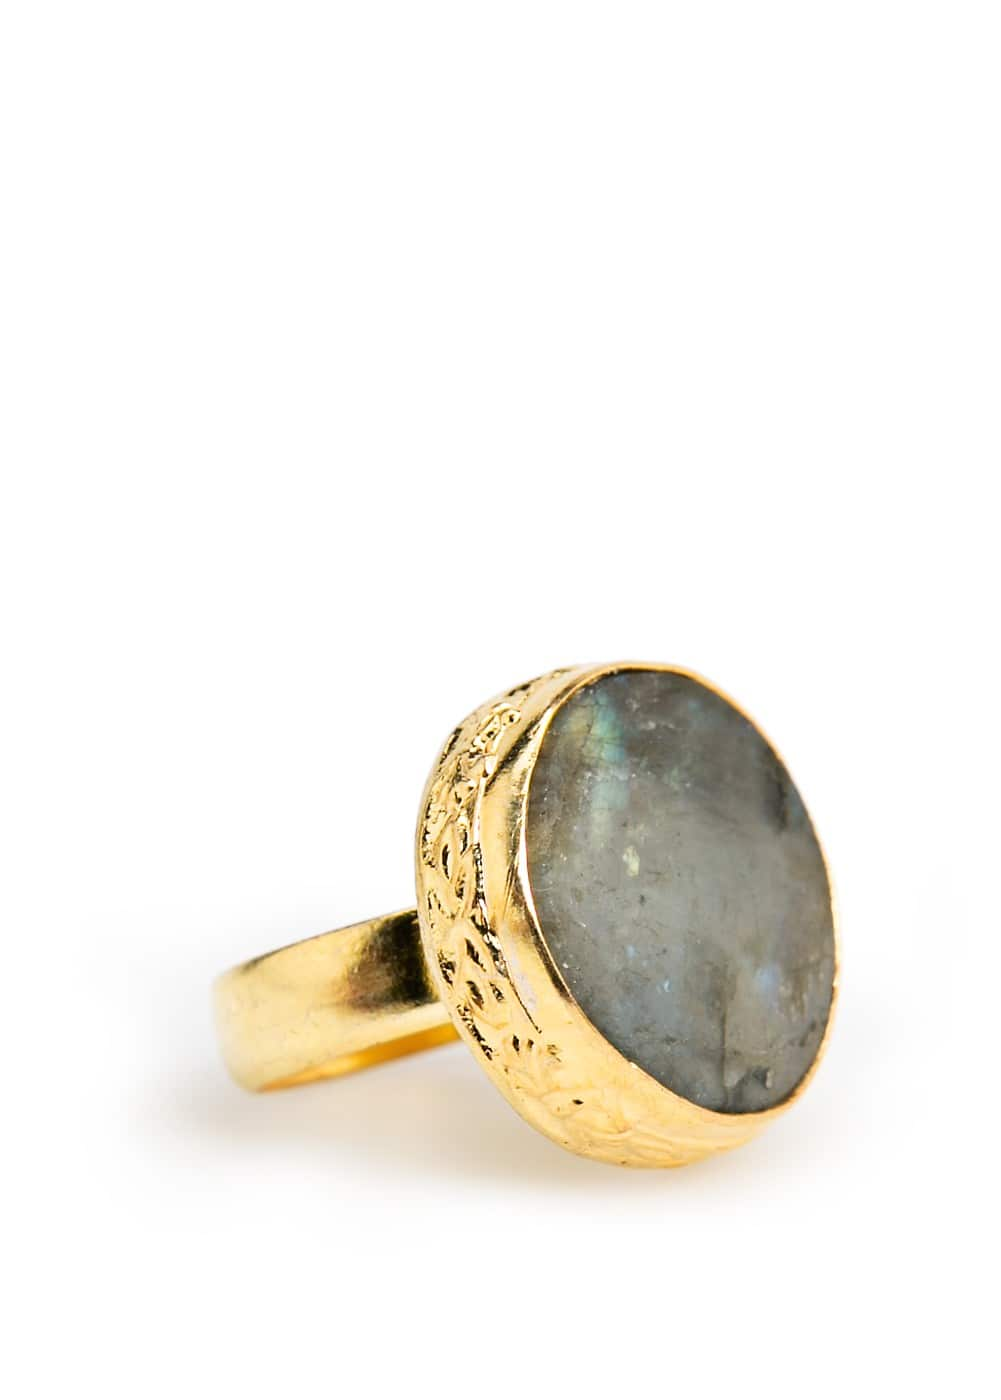 Rounded stone ring